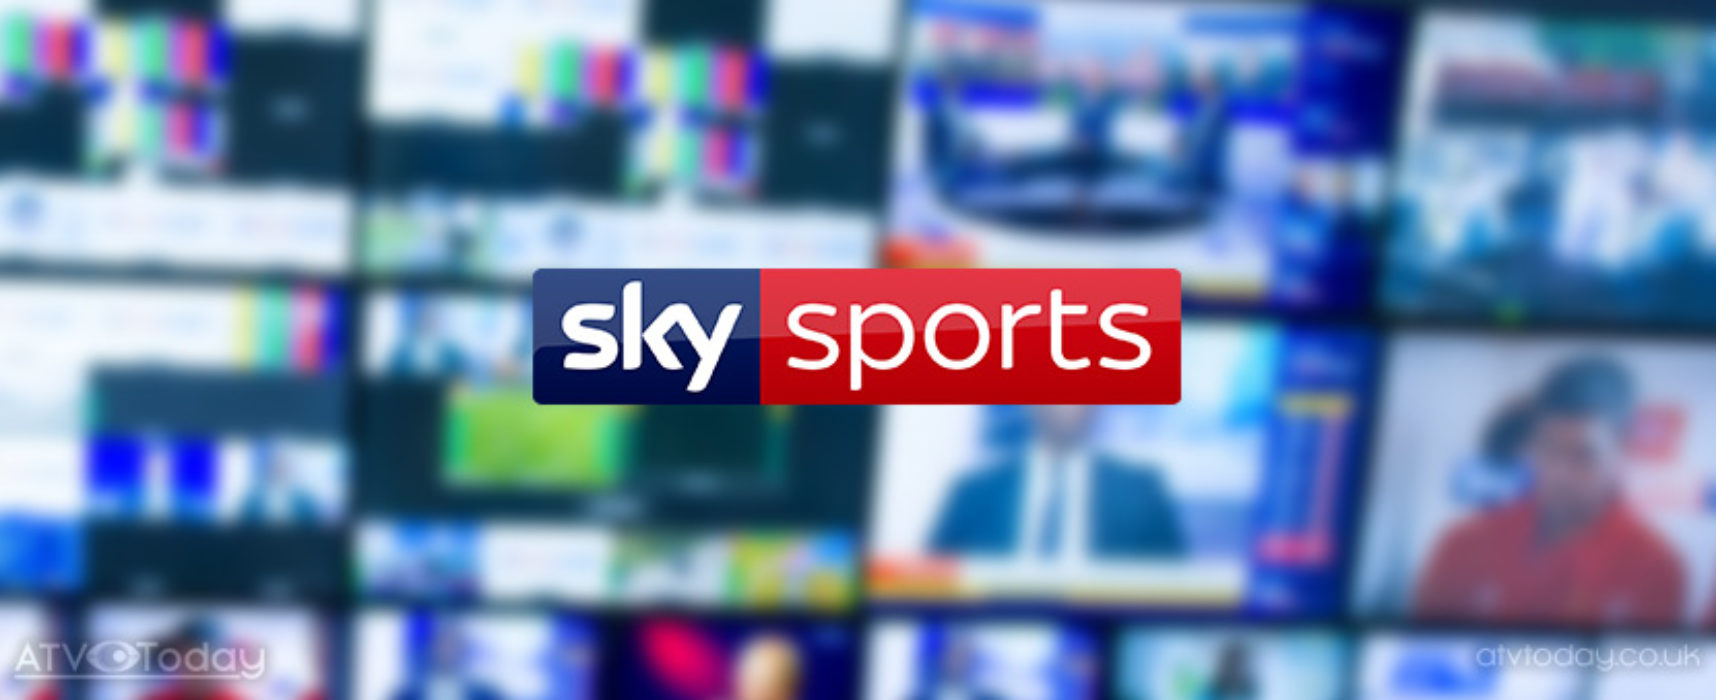 Sky Sports to target new audiences through women's sport